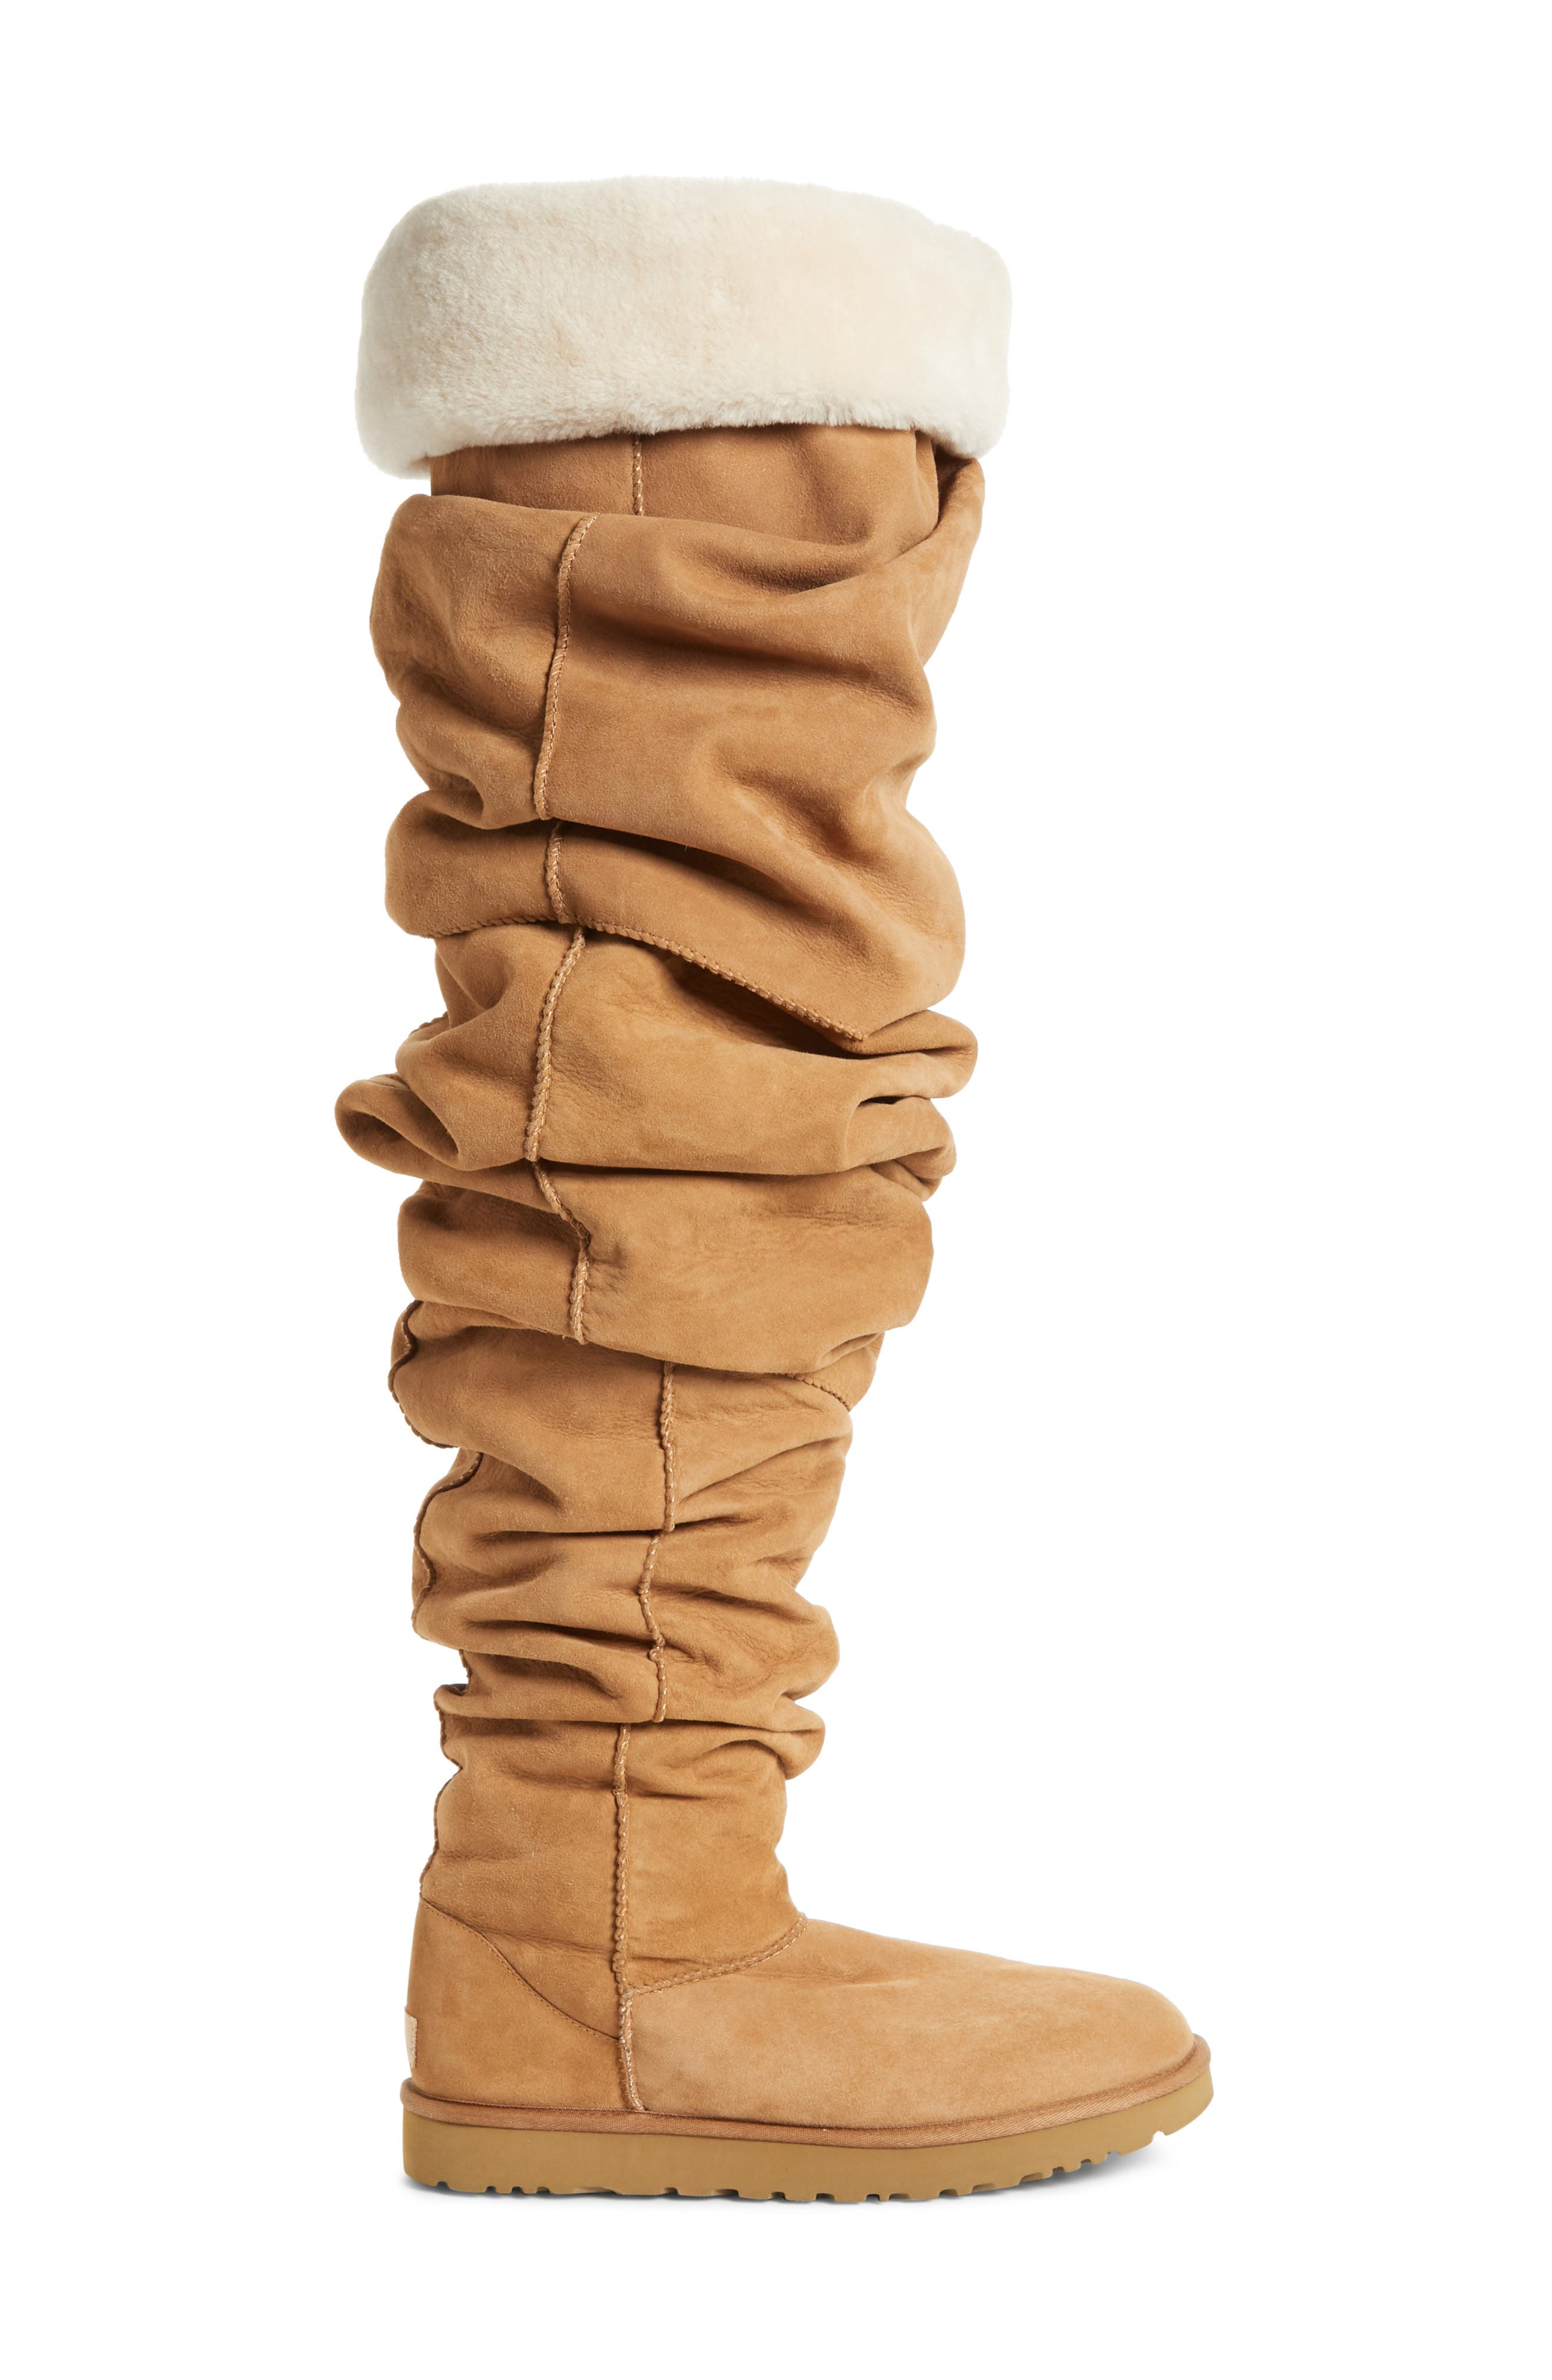 x UGG<sup>®</sup> Thigh High Boot,                             Alternate thumbnail 3, color,                             200